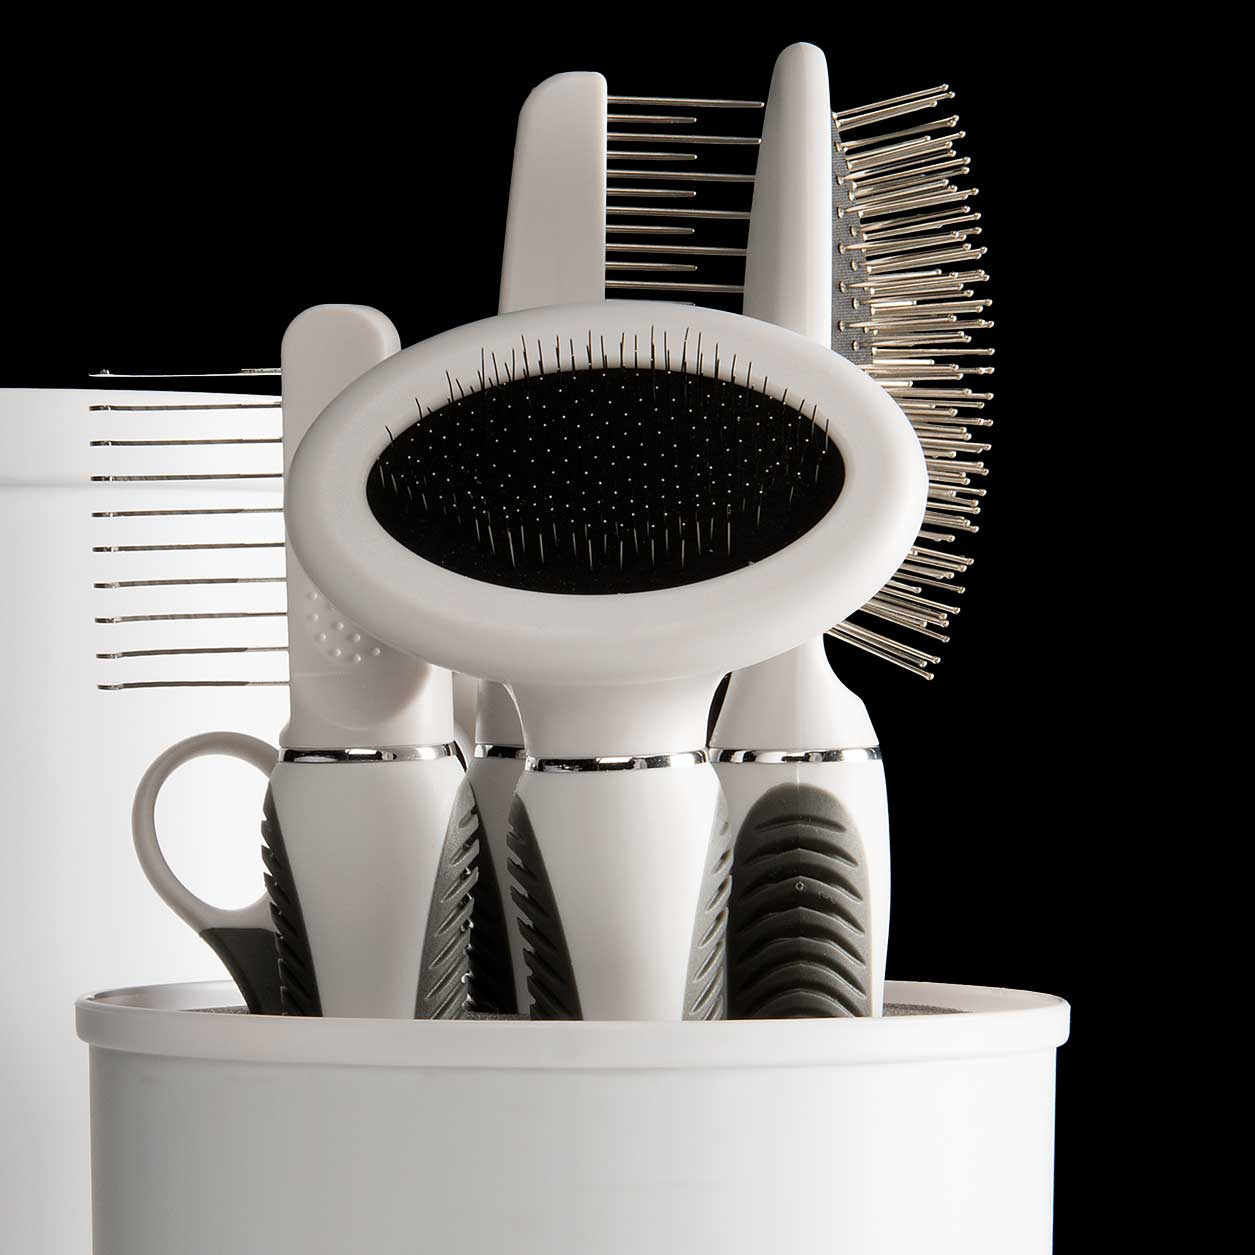 Longhair Grooming Kit tools standing upright in container